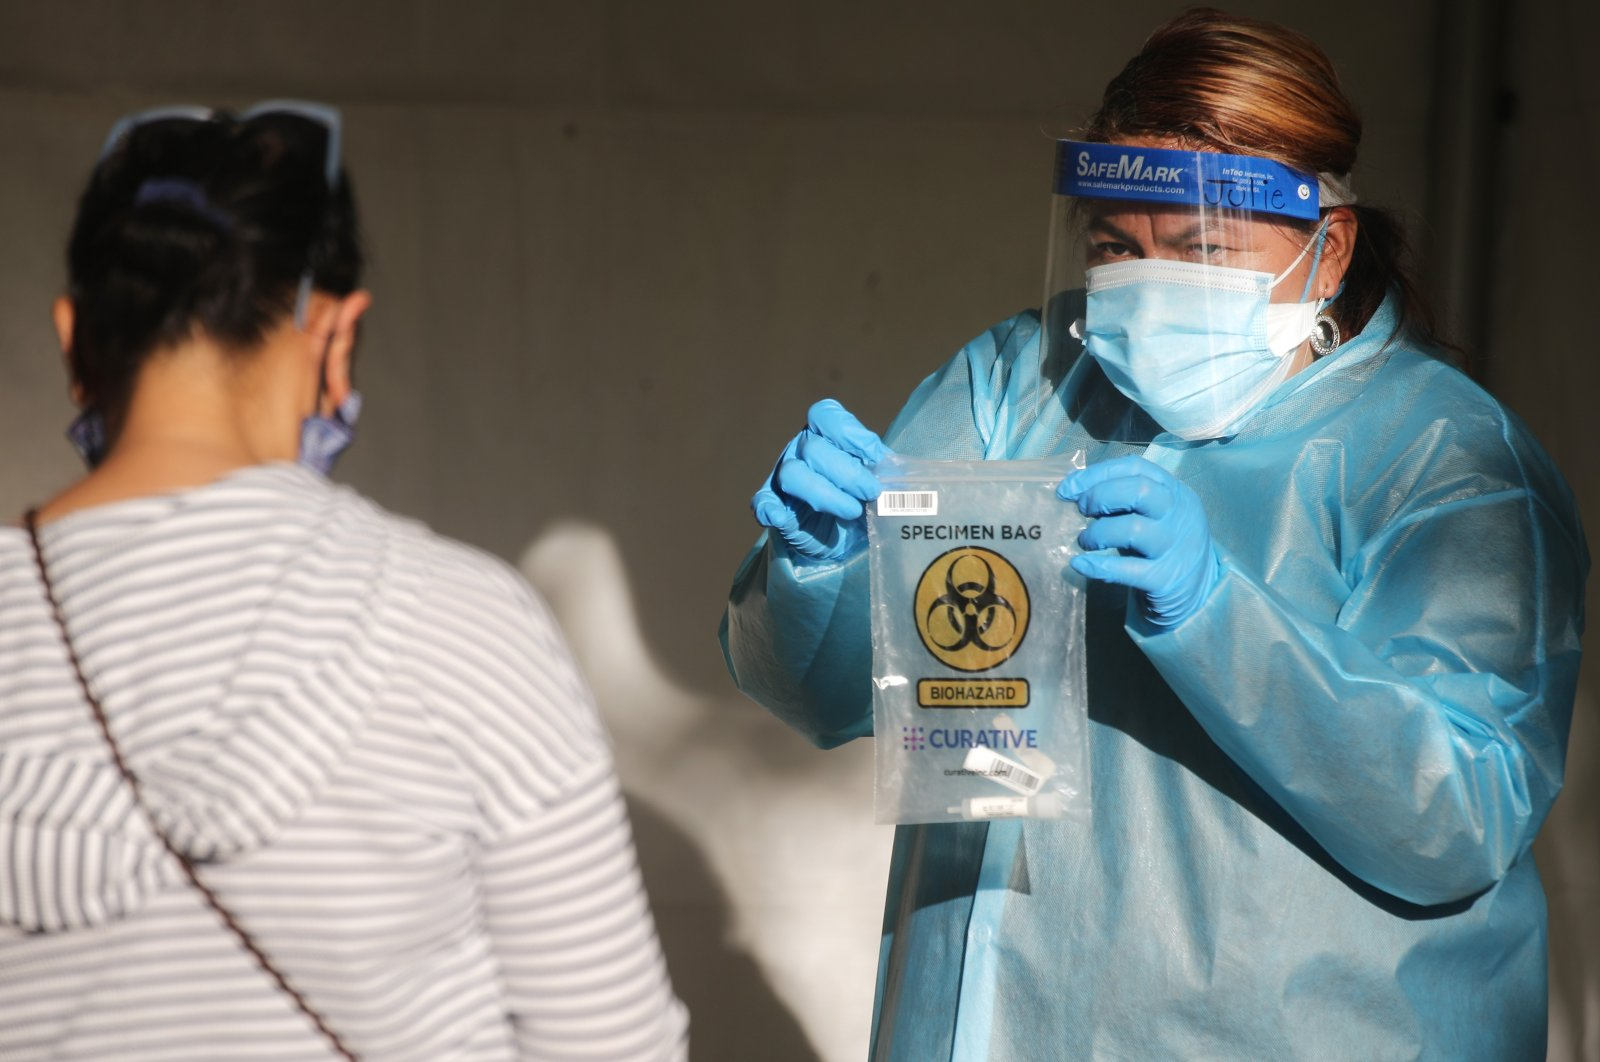 A health care worker holds a specimen bag at a walk-up COVID-19 testing site, San Fernando, California, Dec. 2, 2020. (AFP Photo)